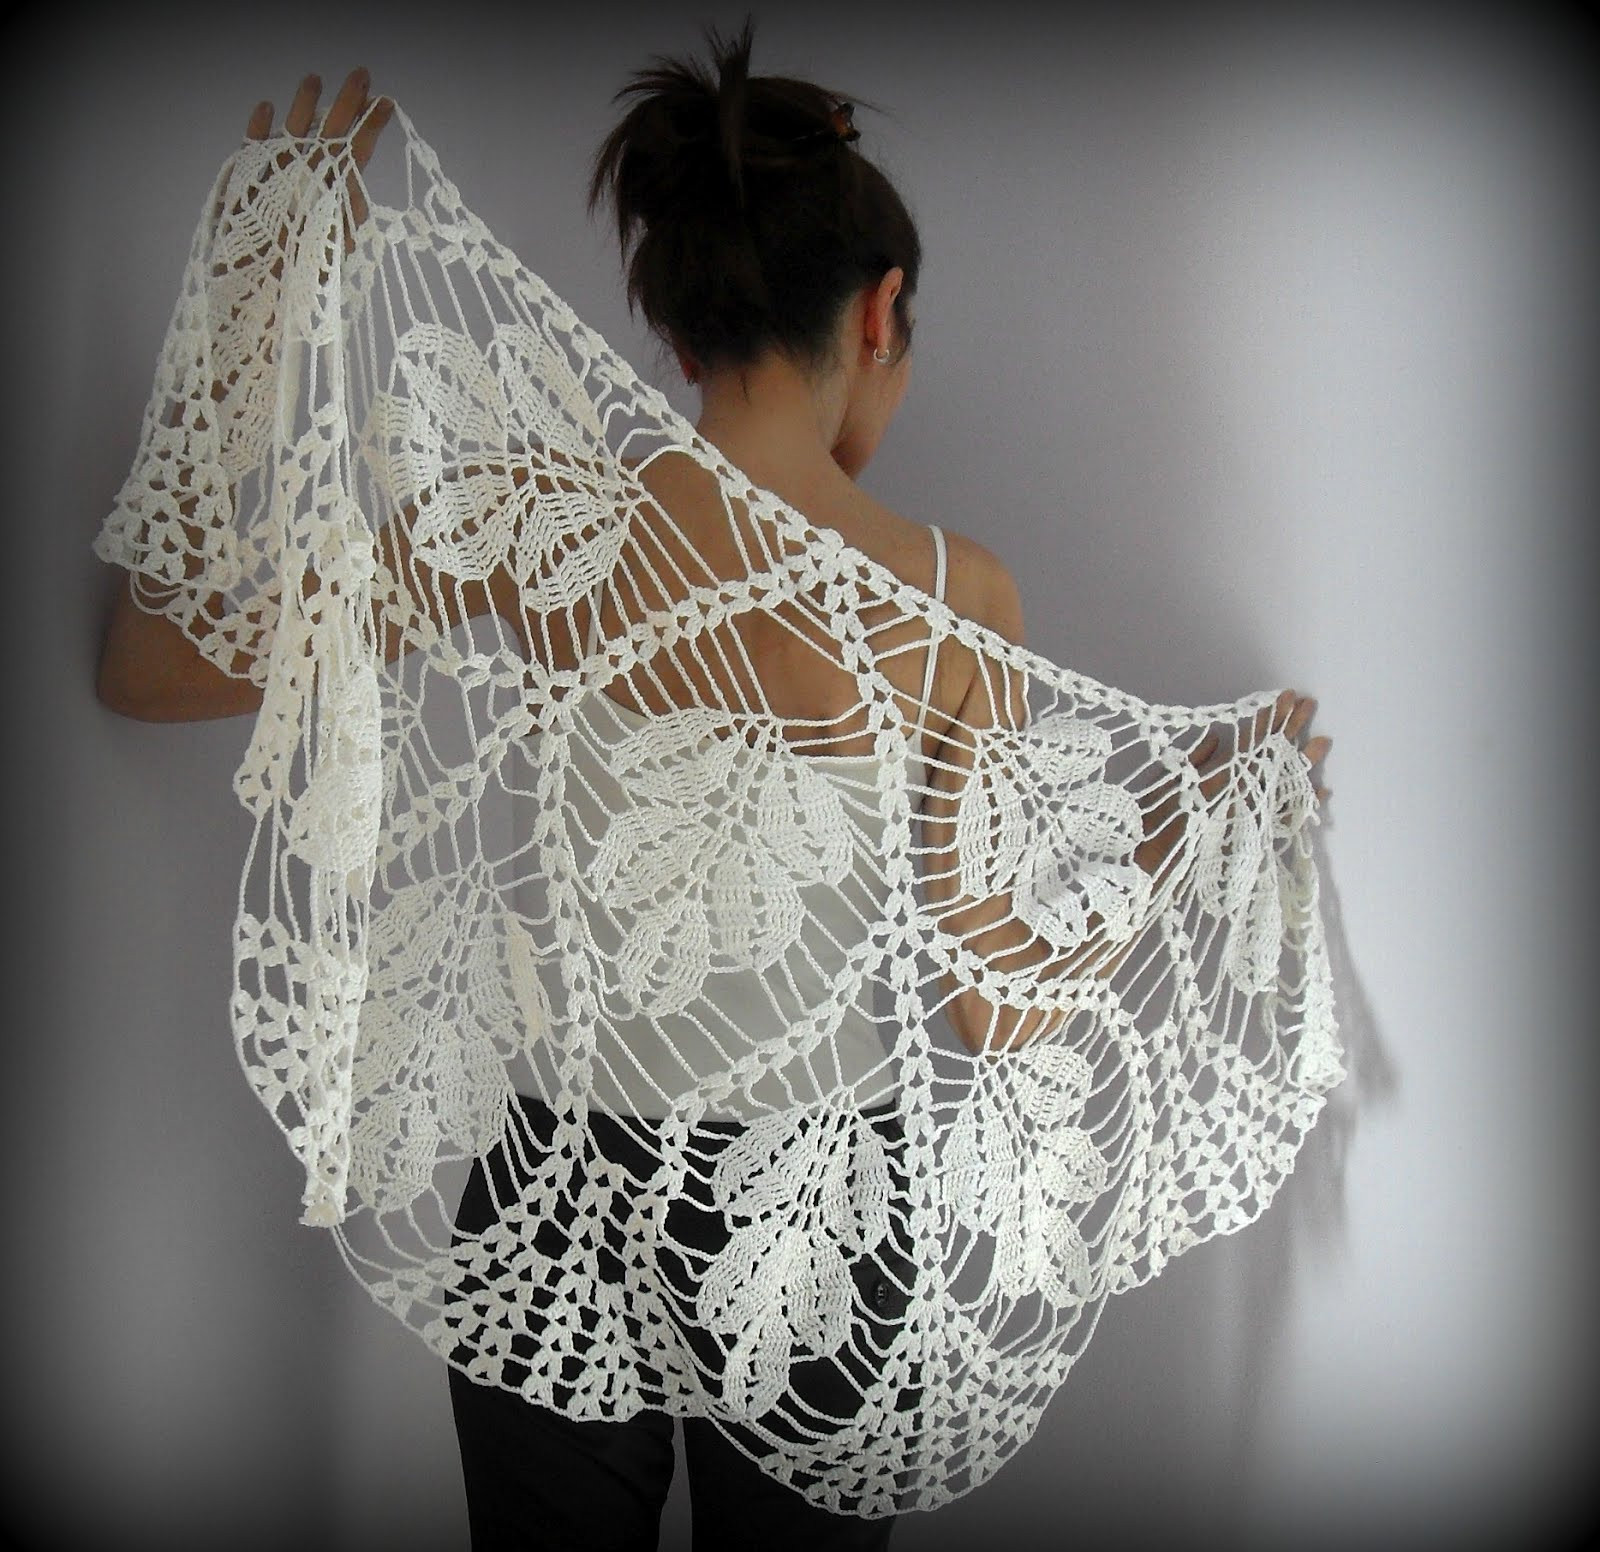 Lace Shawl Elegant Silvia66 White Leaves Hand Crochet Lace Wrap Shawl Of Top 45 Pictures Lace Shawl